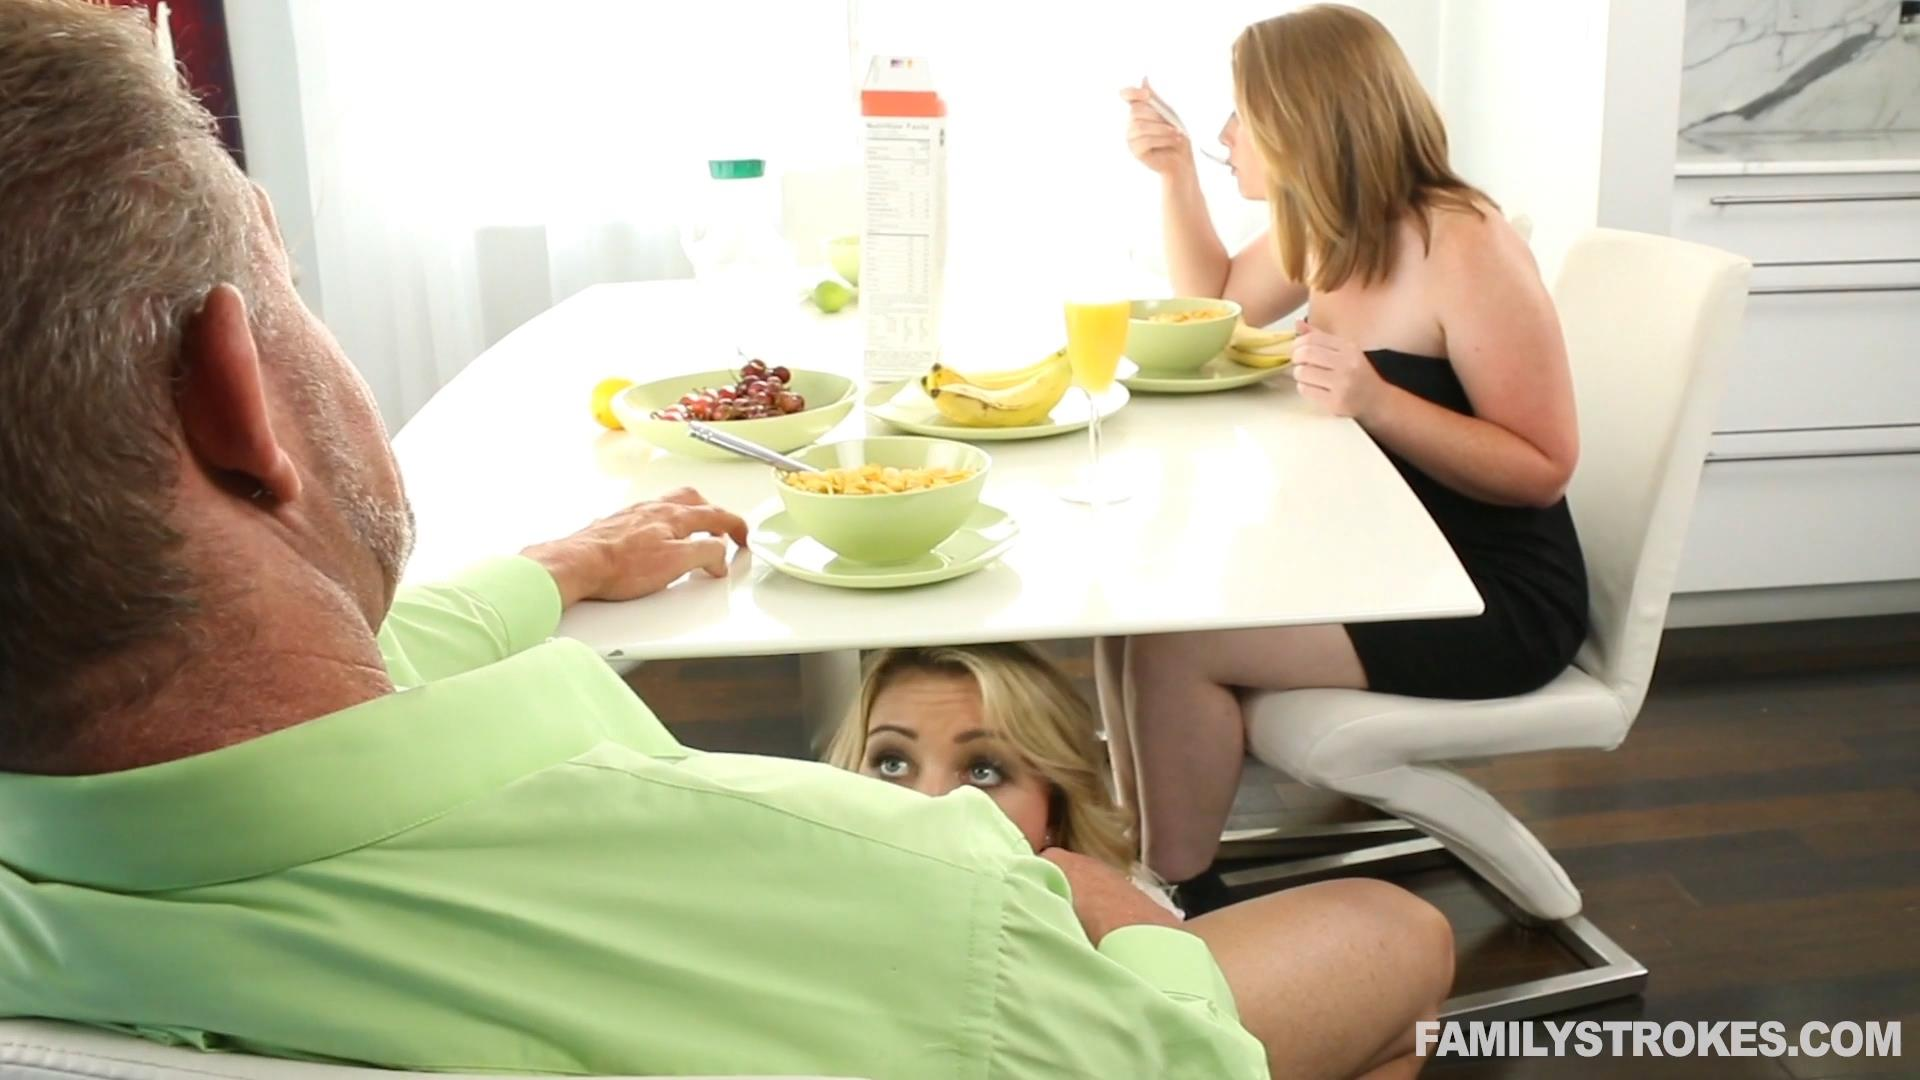 Family strokes hd